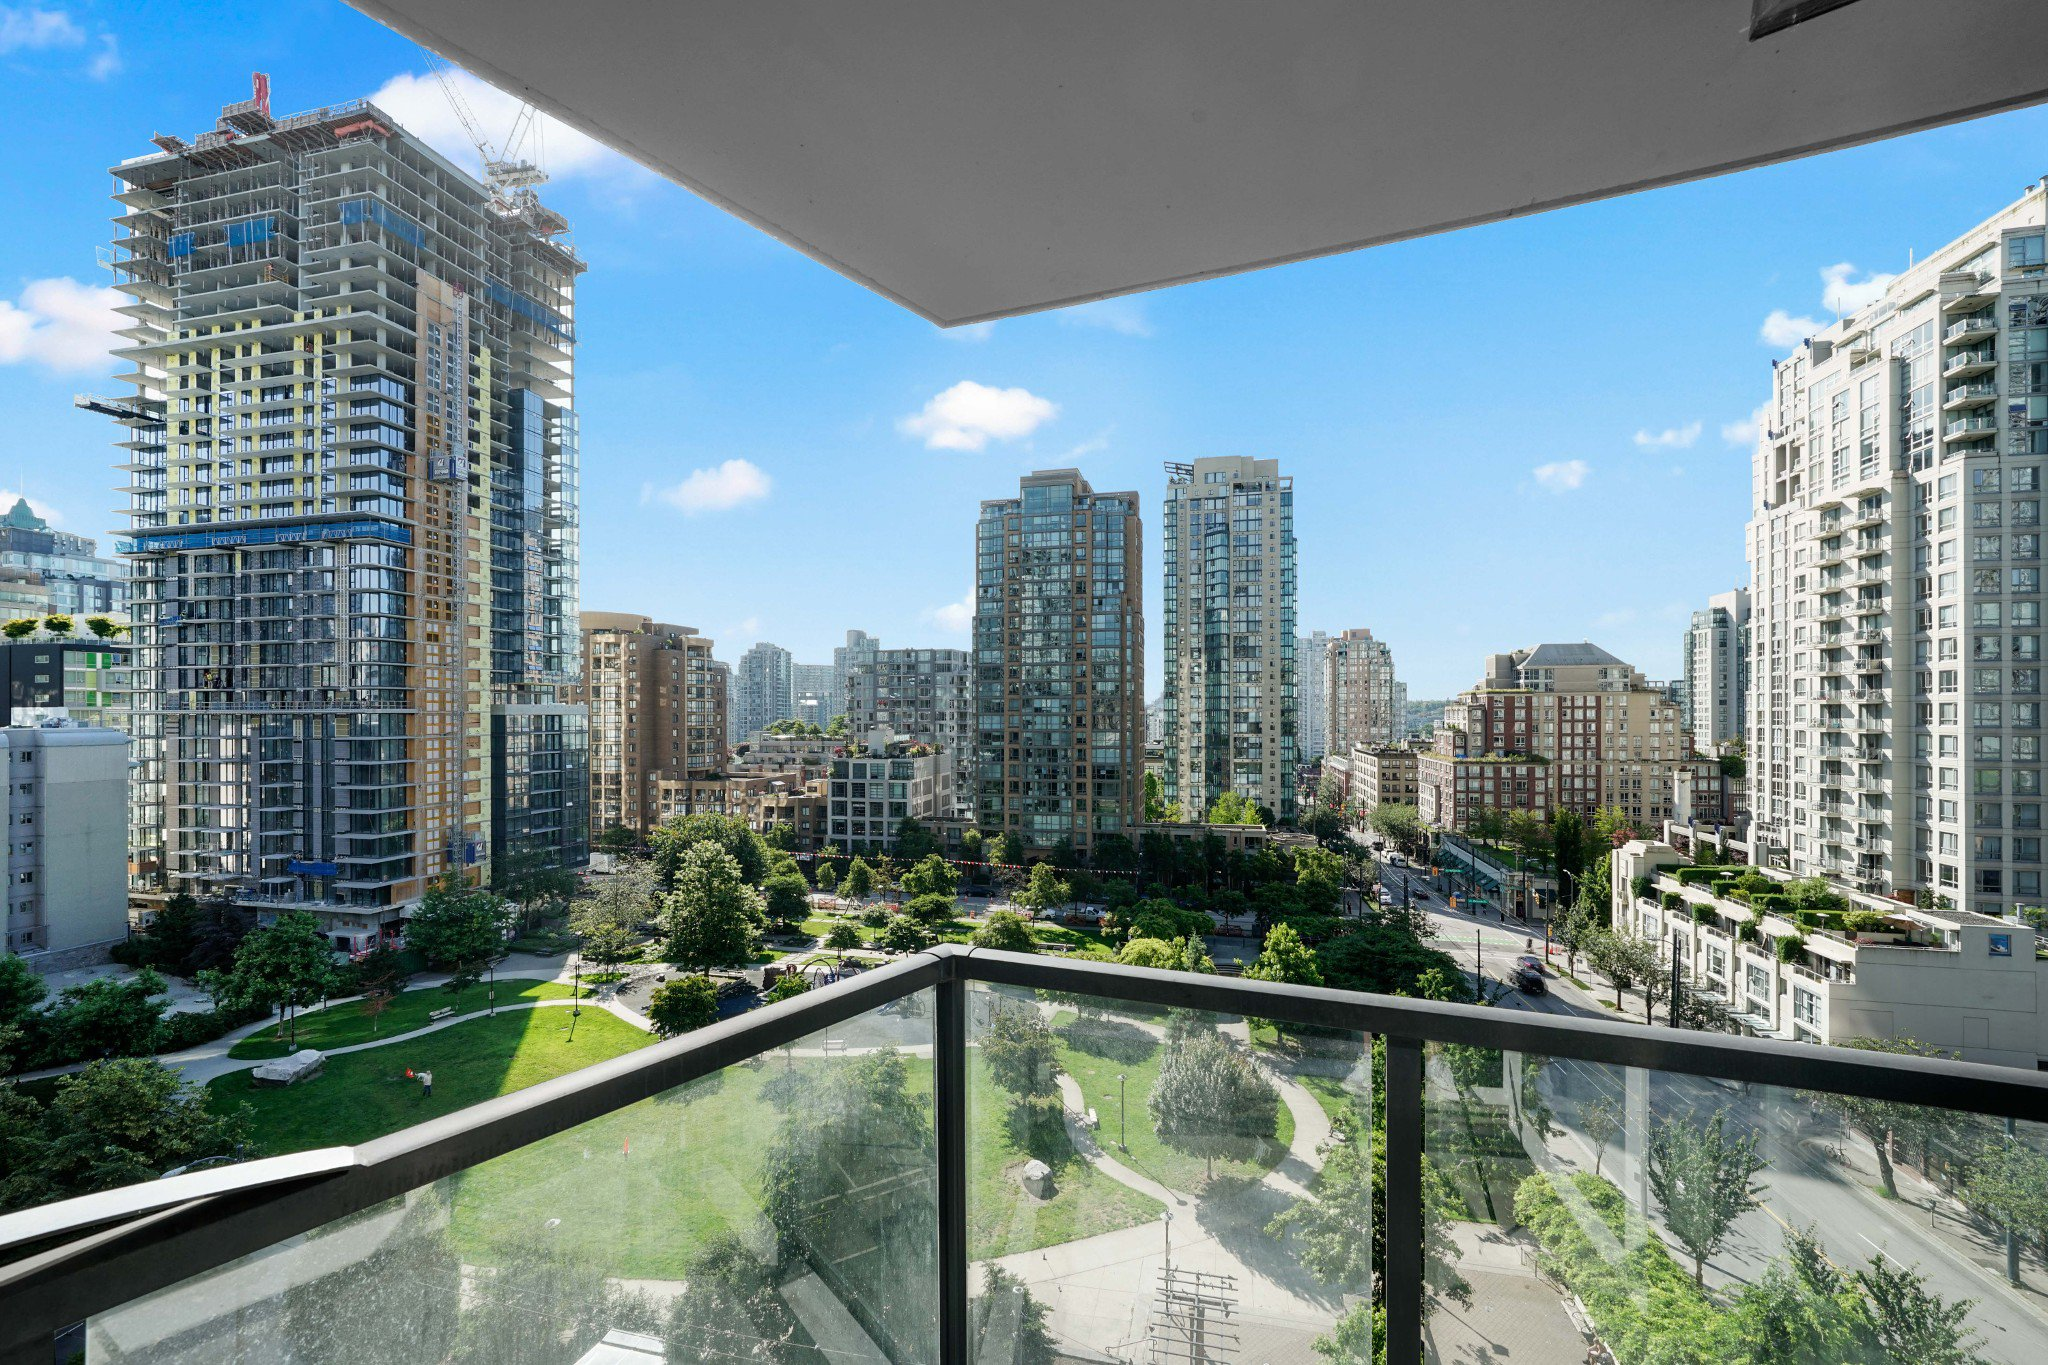 Main Photo: 805 1199 Seymour Street in Vancouver: Downtown VW Condo for sale (Vancouver West)  : MLS®# R2490228